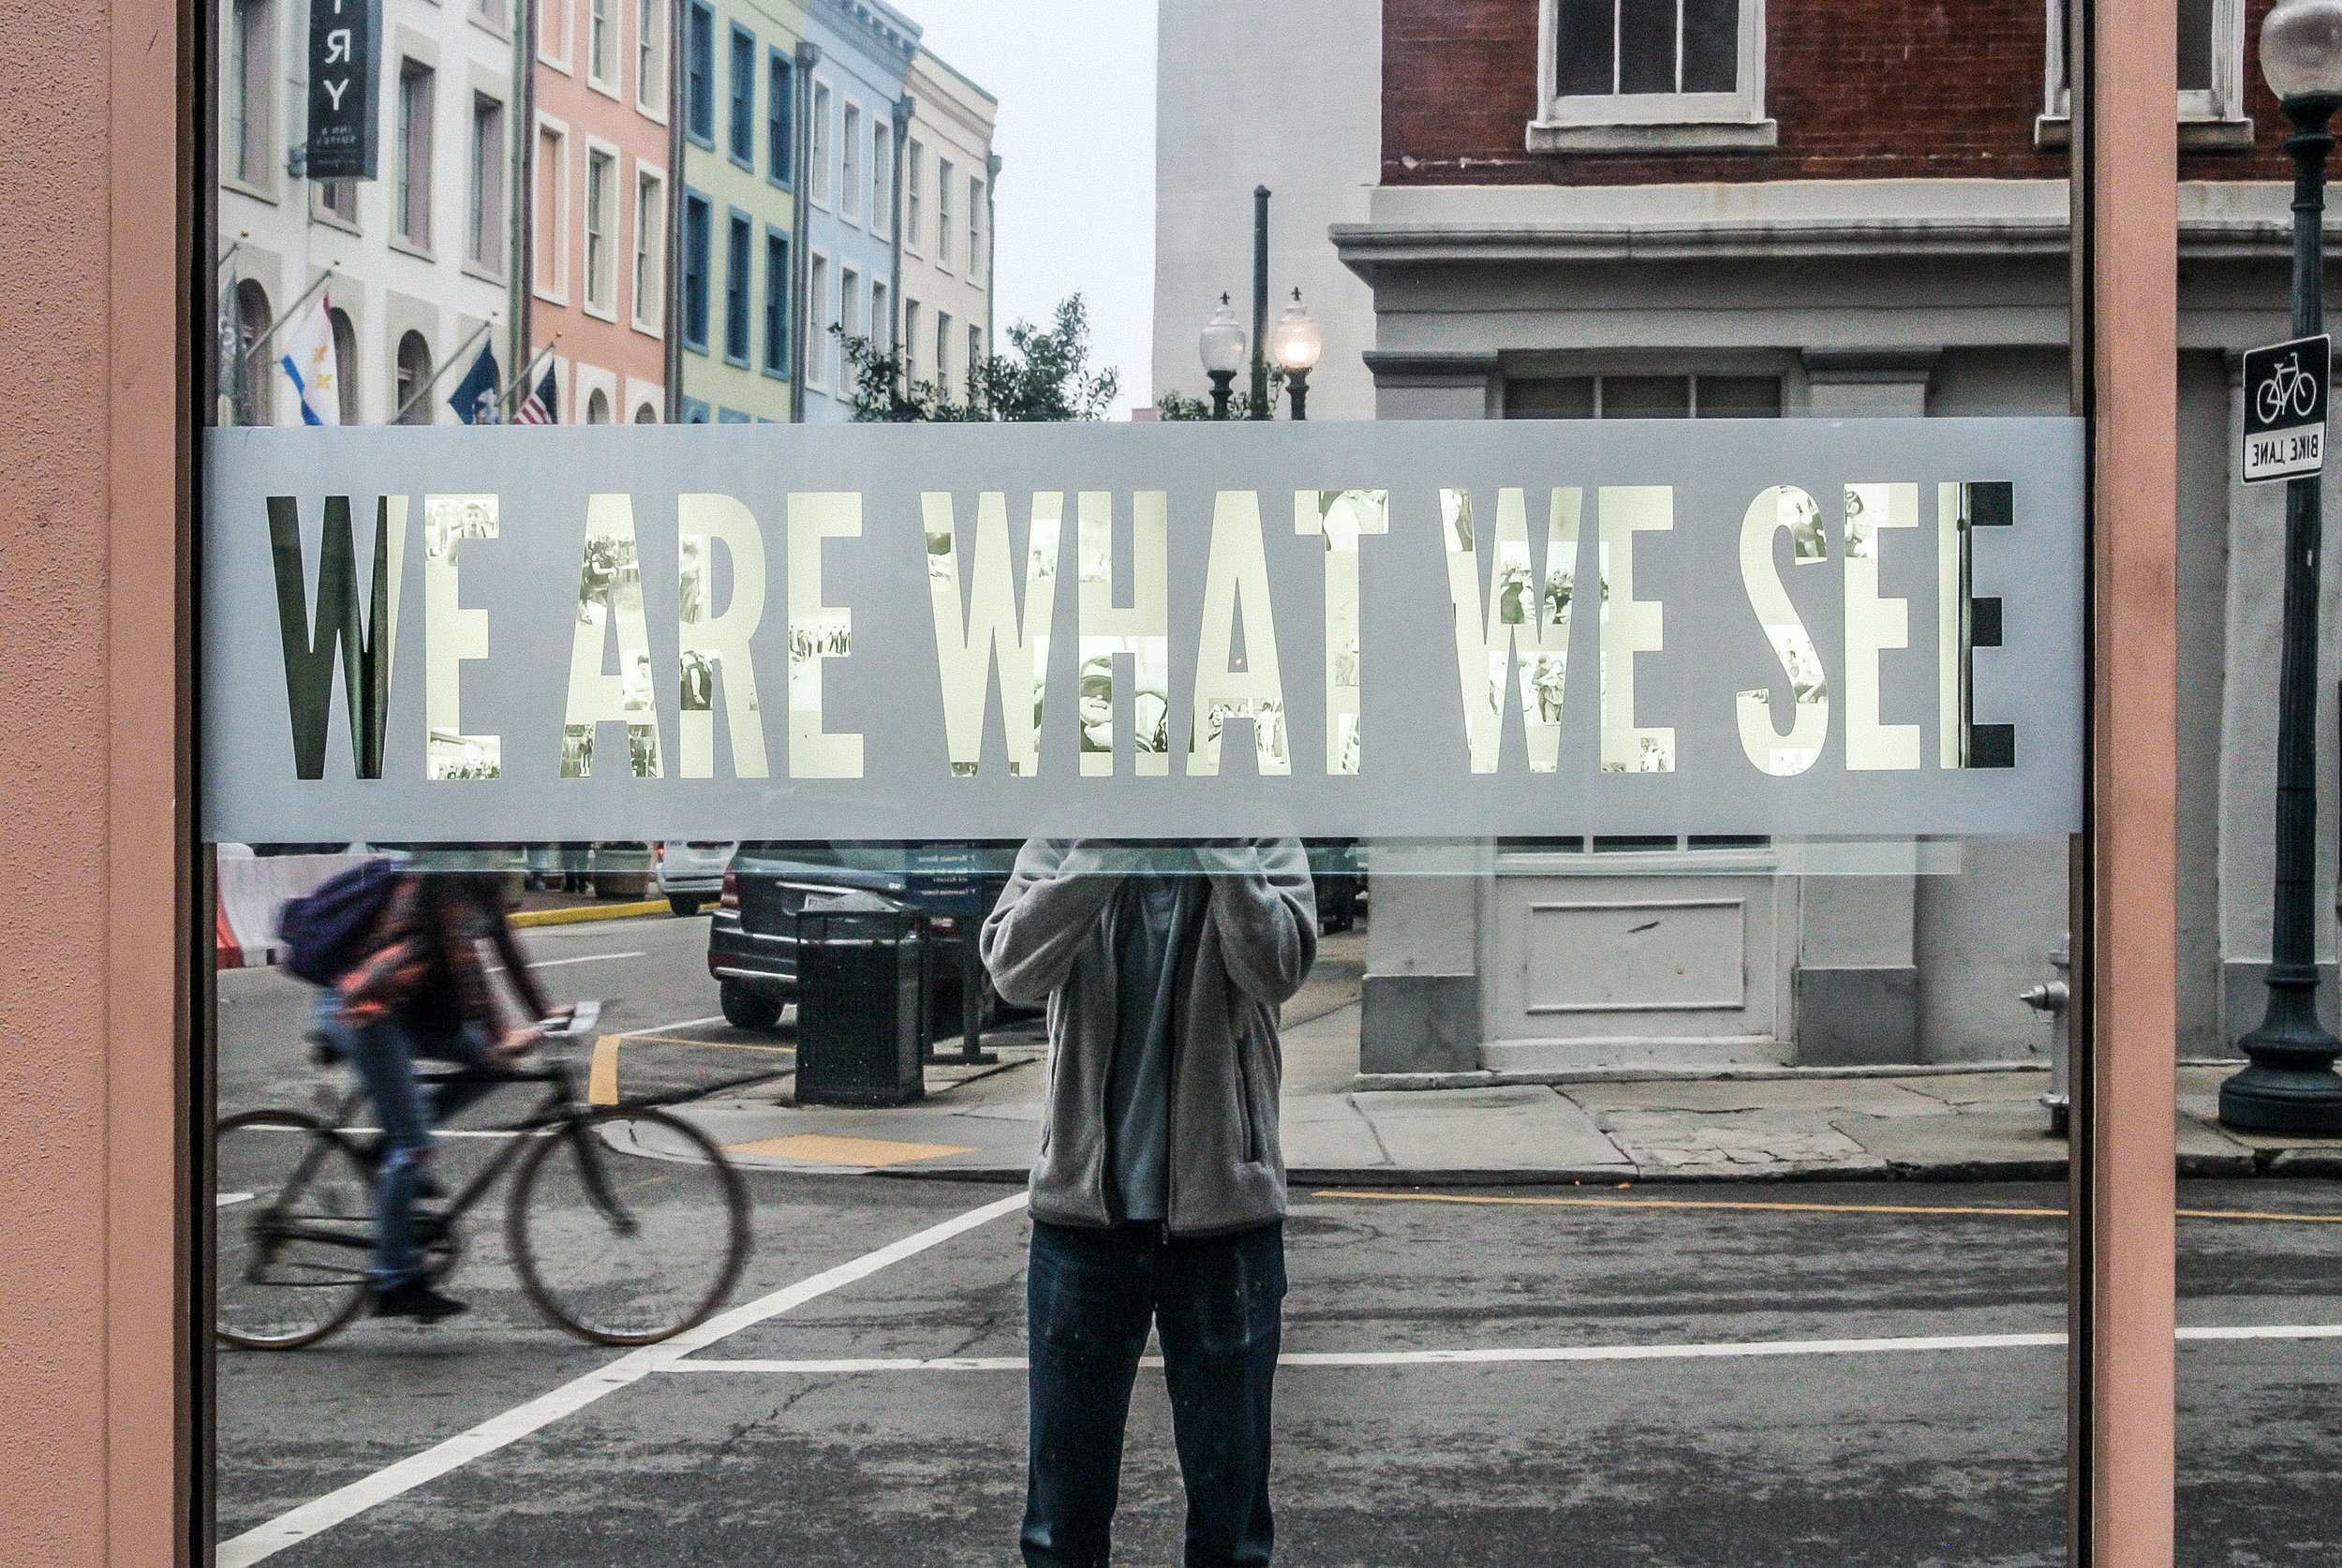 We Are What We See, New Orleans, Louisiana, 2014